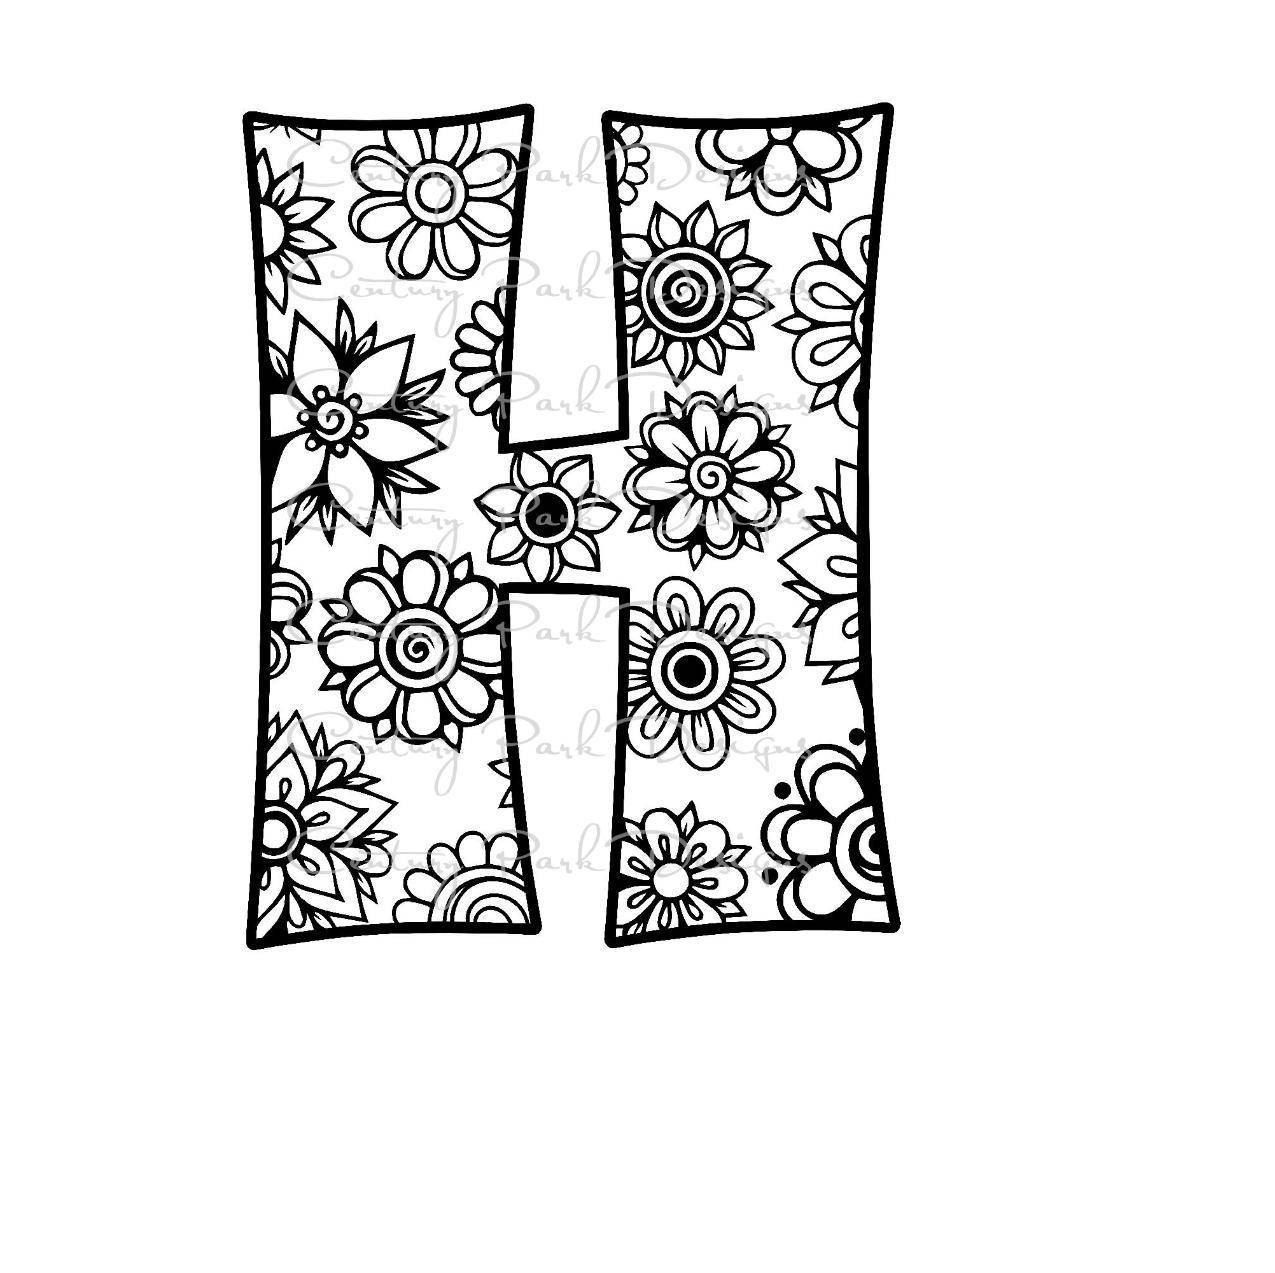 Letter H Alphabet Flowers Svg Jpeg Png Pdf Use With Silhouette Studio And Cricut Design Space C Mandala Coloring Pages Mandala Coloring Coloring Pages